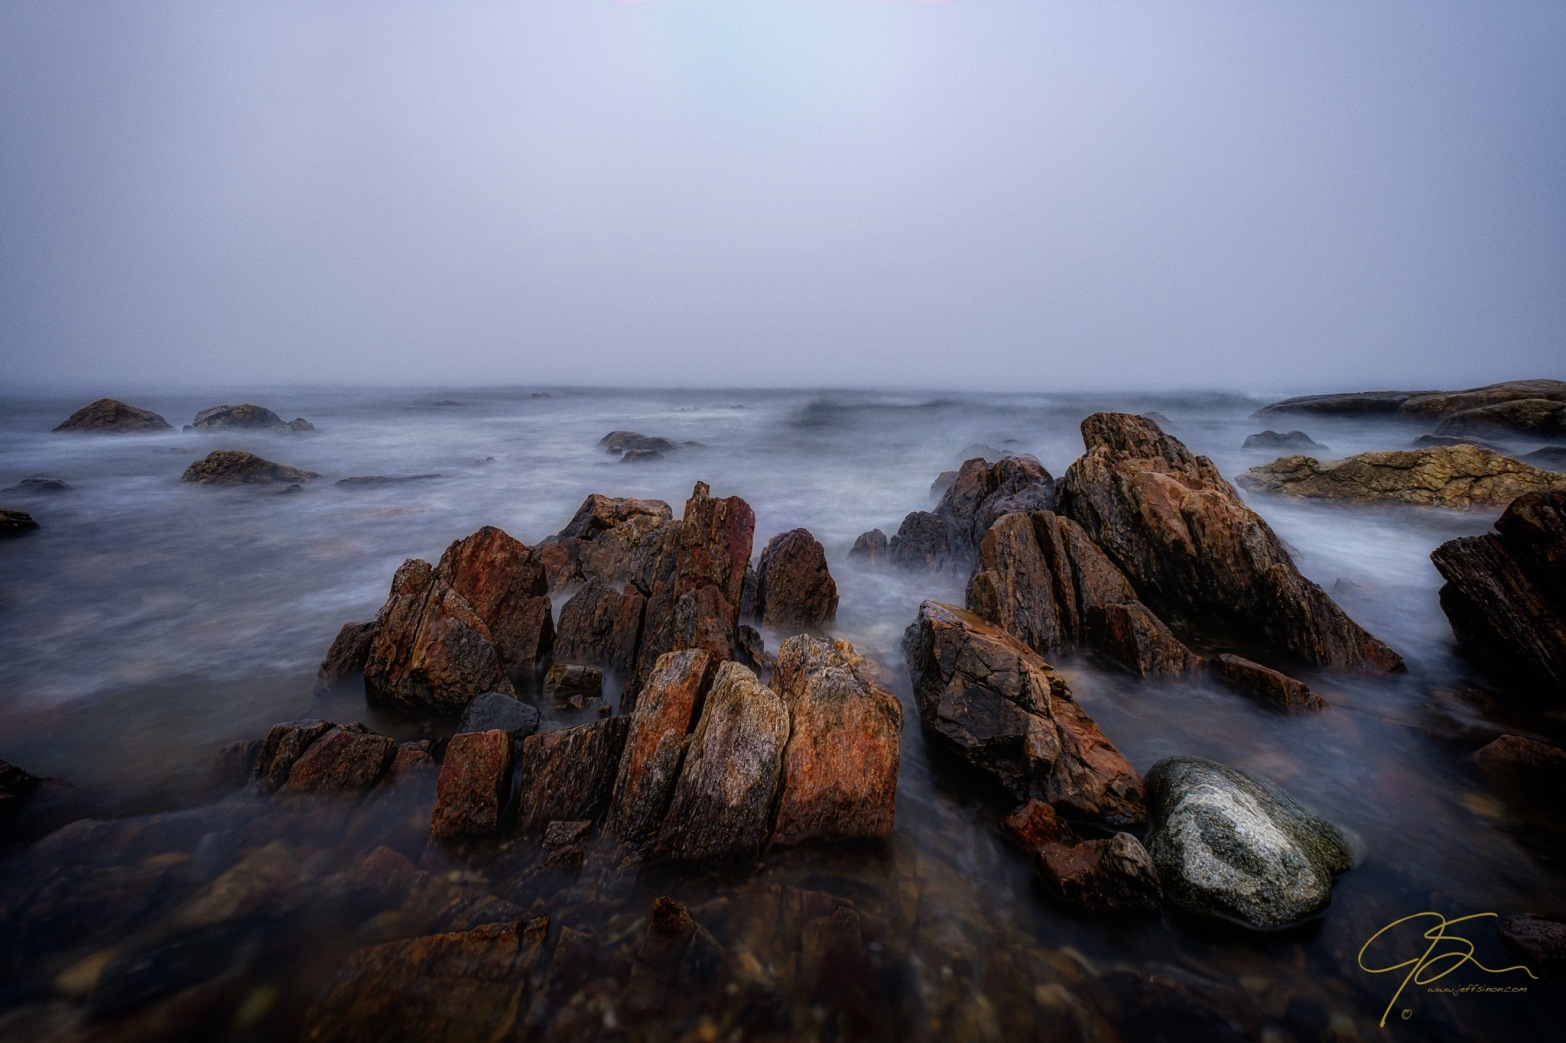 Thick fog along the rocky New Hampshire seacoast, large reddish rocks jut above the incoming tide.